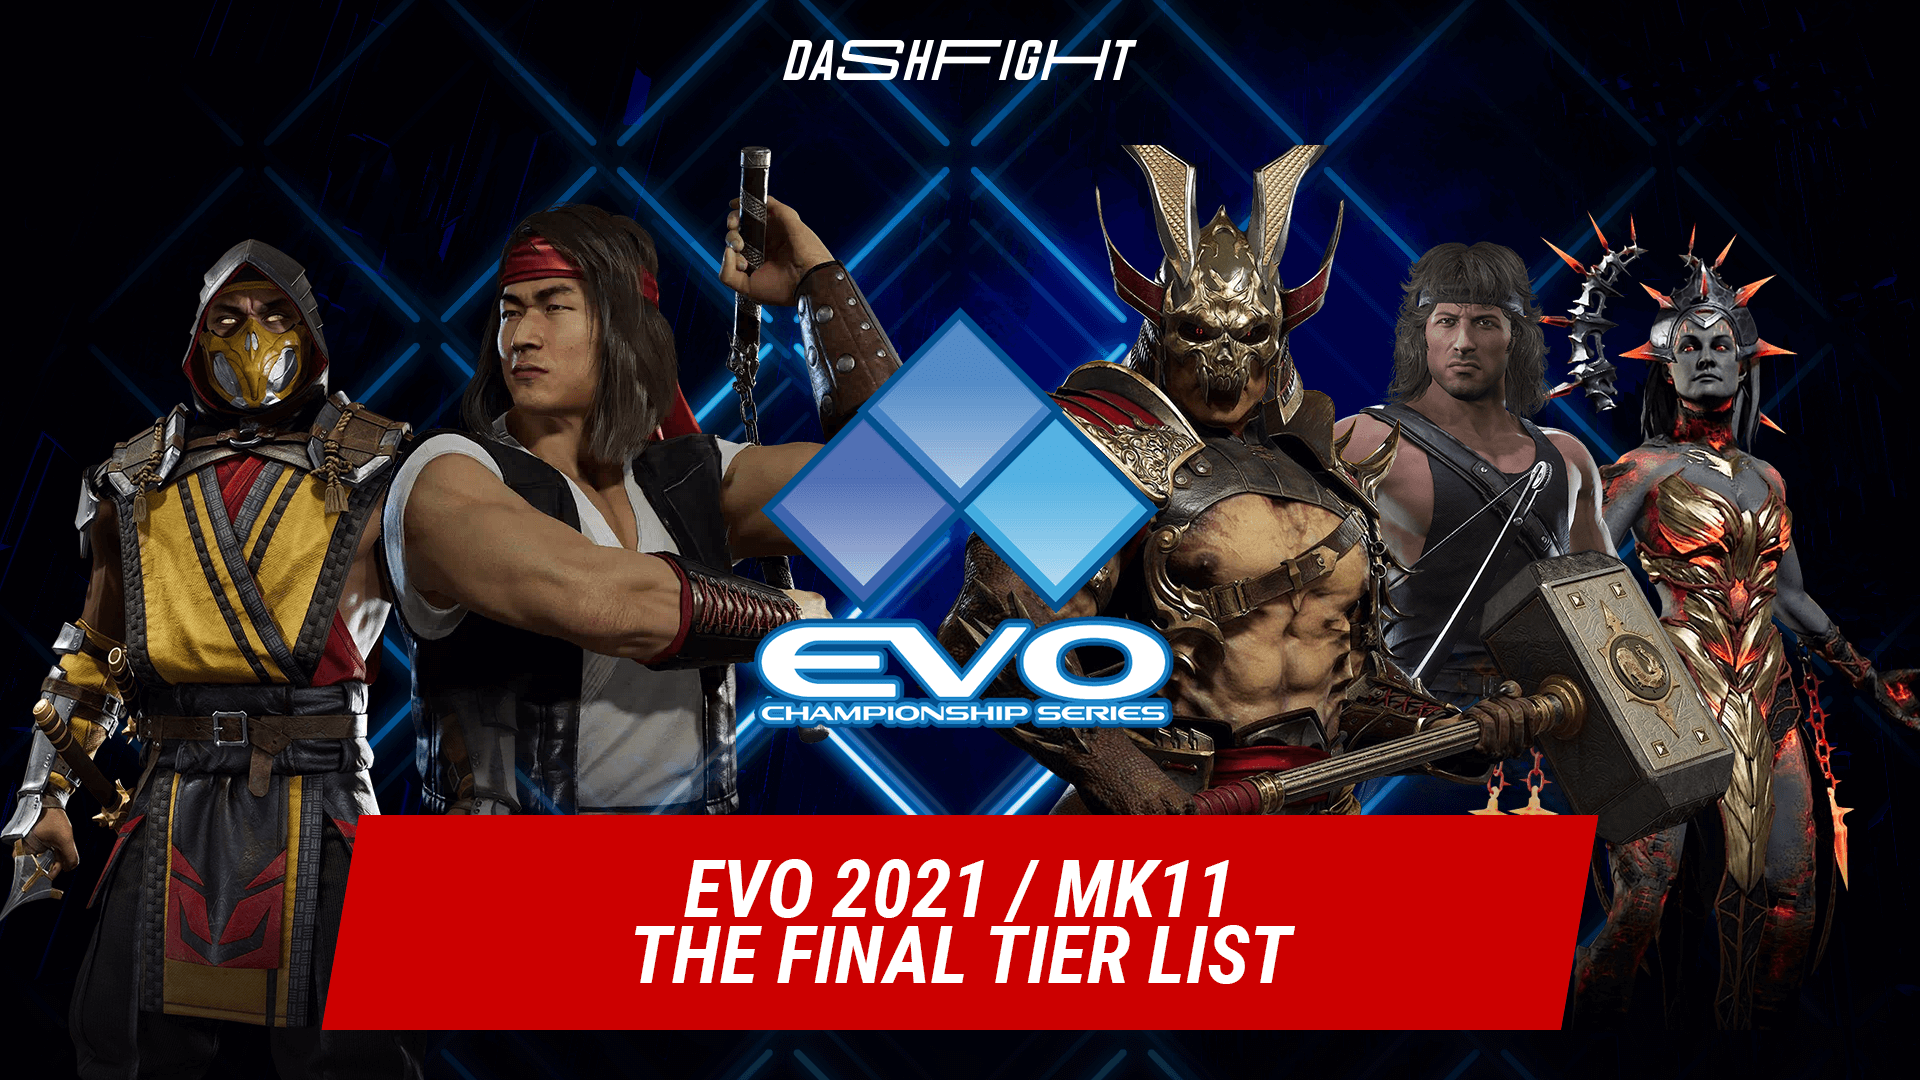 Evo 2021: The Final MK11 Tier List before the FGC's biggest Tournament